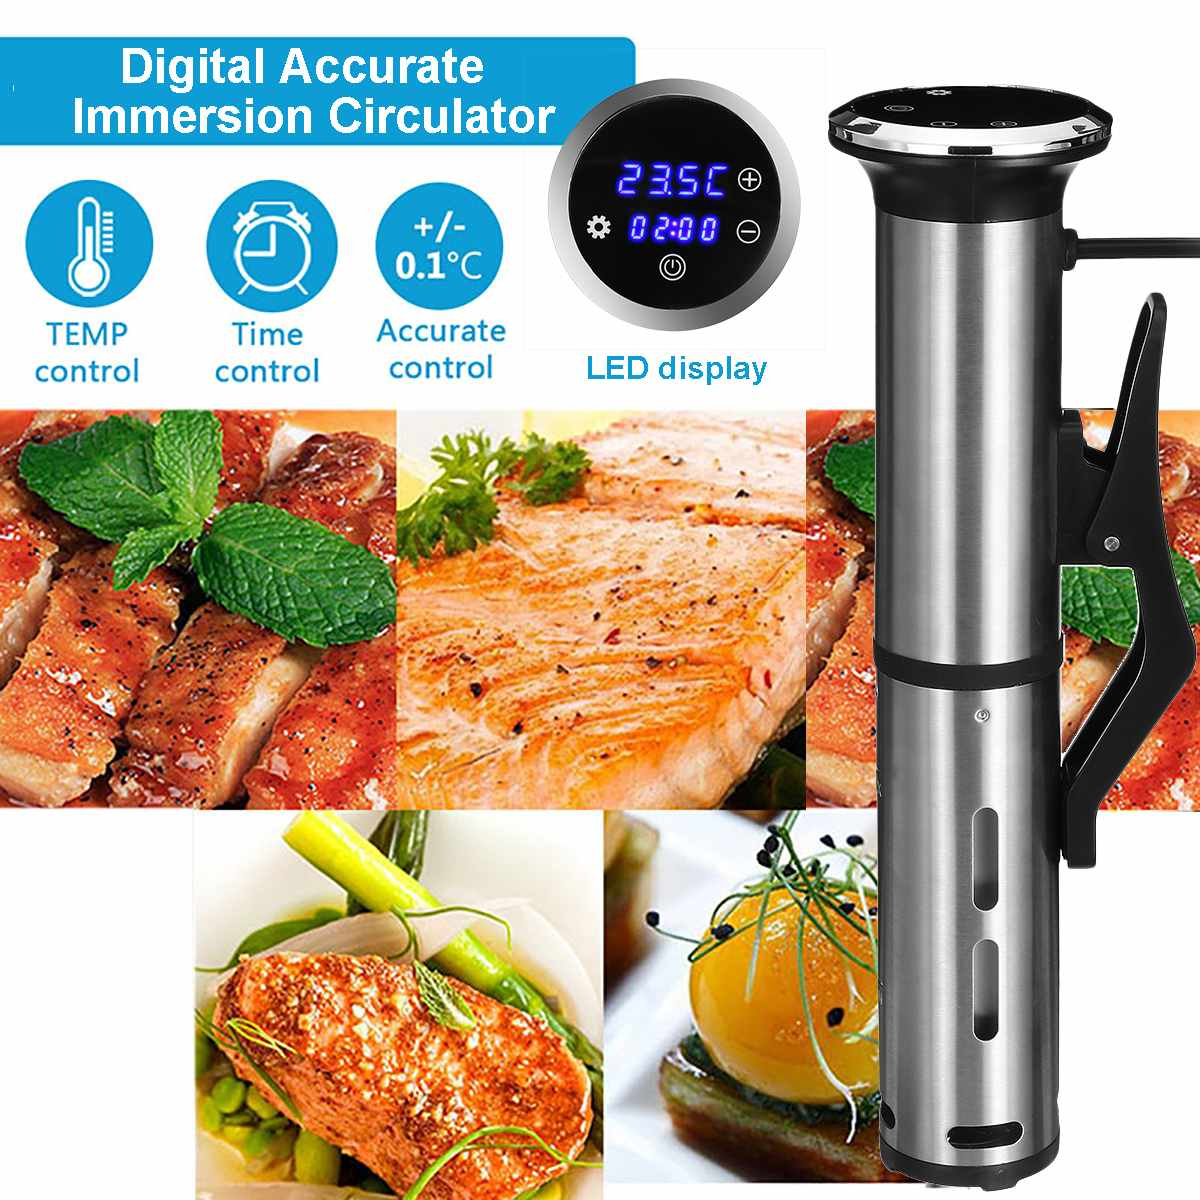 2100W Vacuum Slow Sous Vide Food Cooker LED Immersion Circulator Accurate Temperature Timer Waterproof IPX7 Stainless Steel